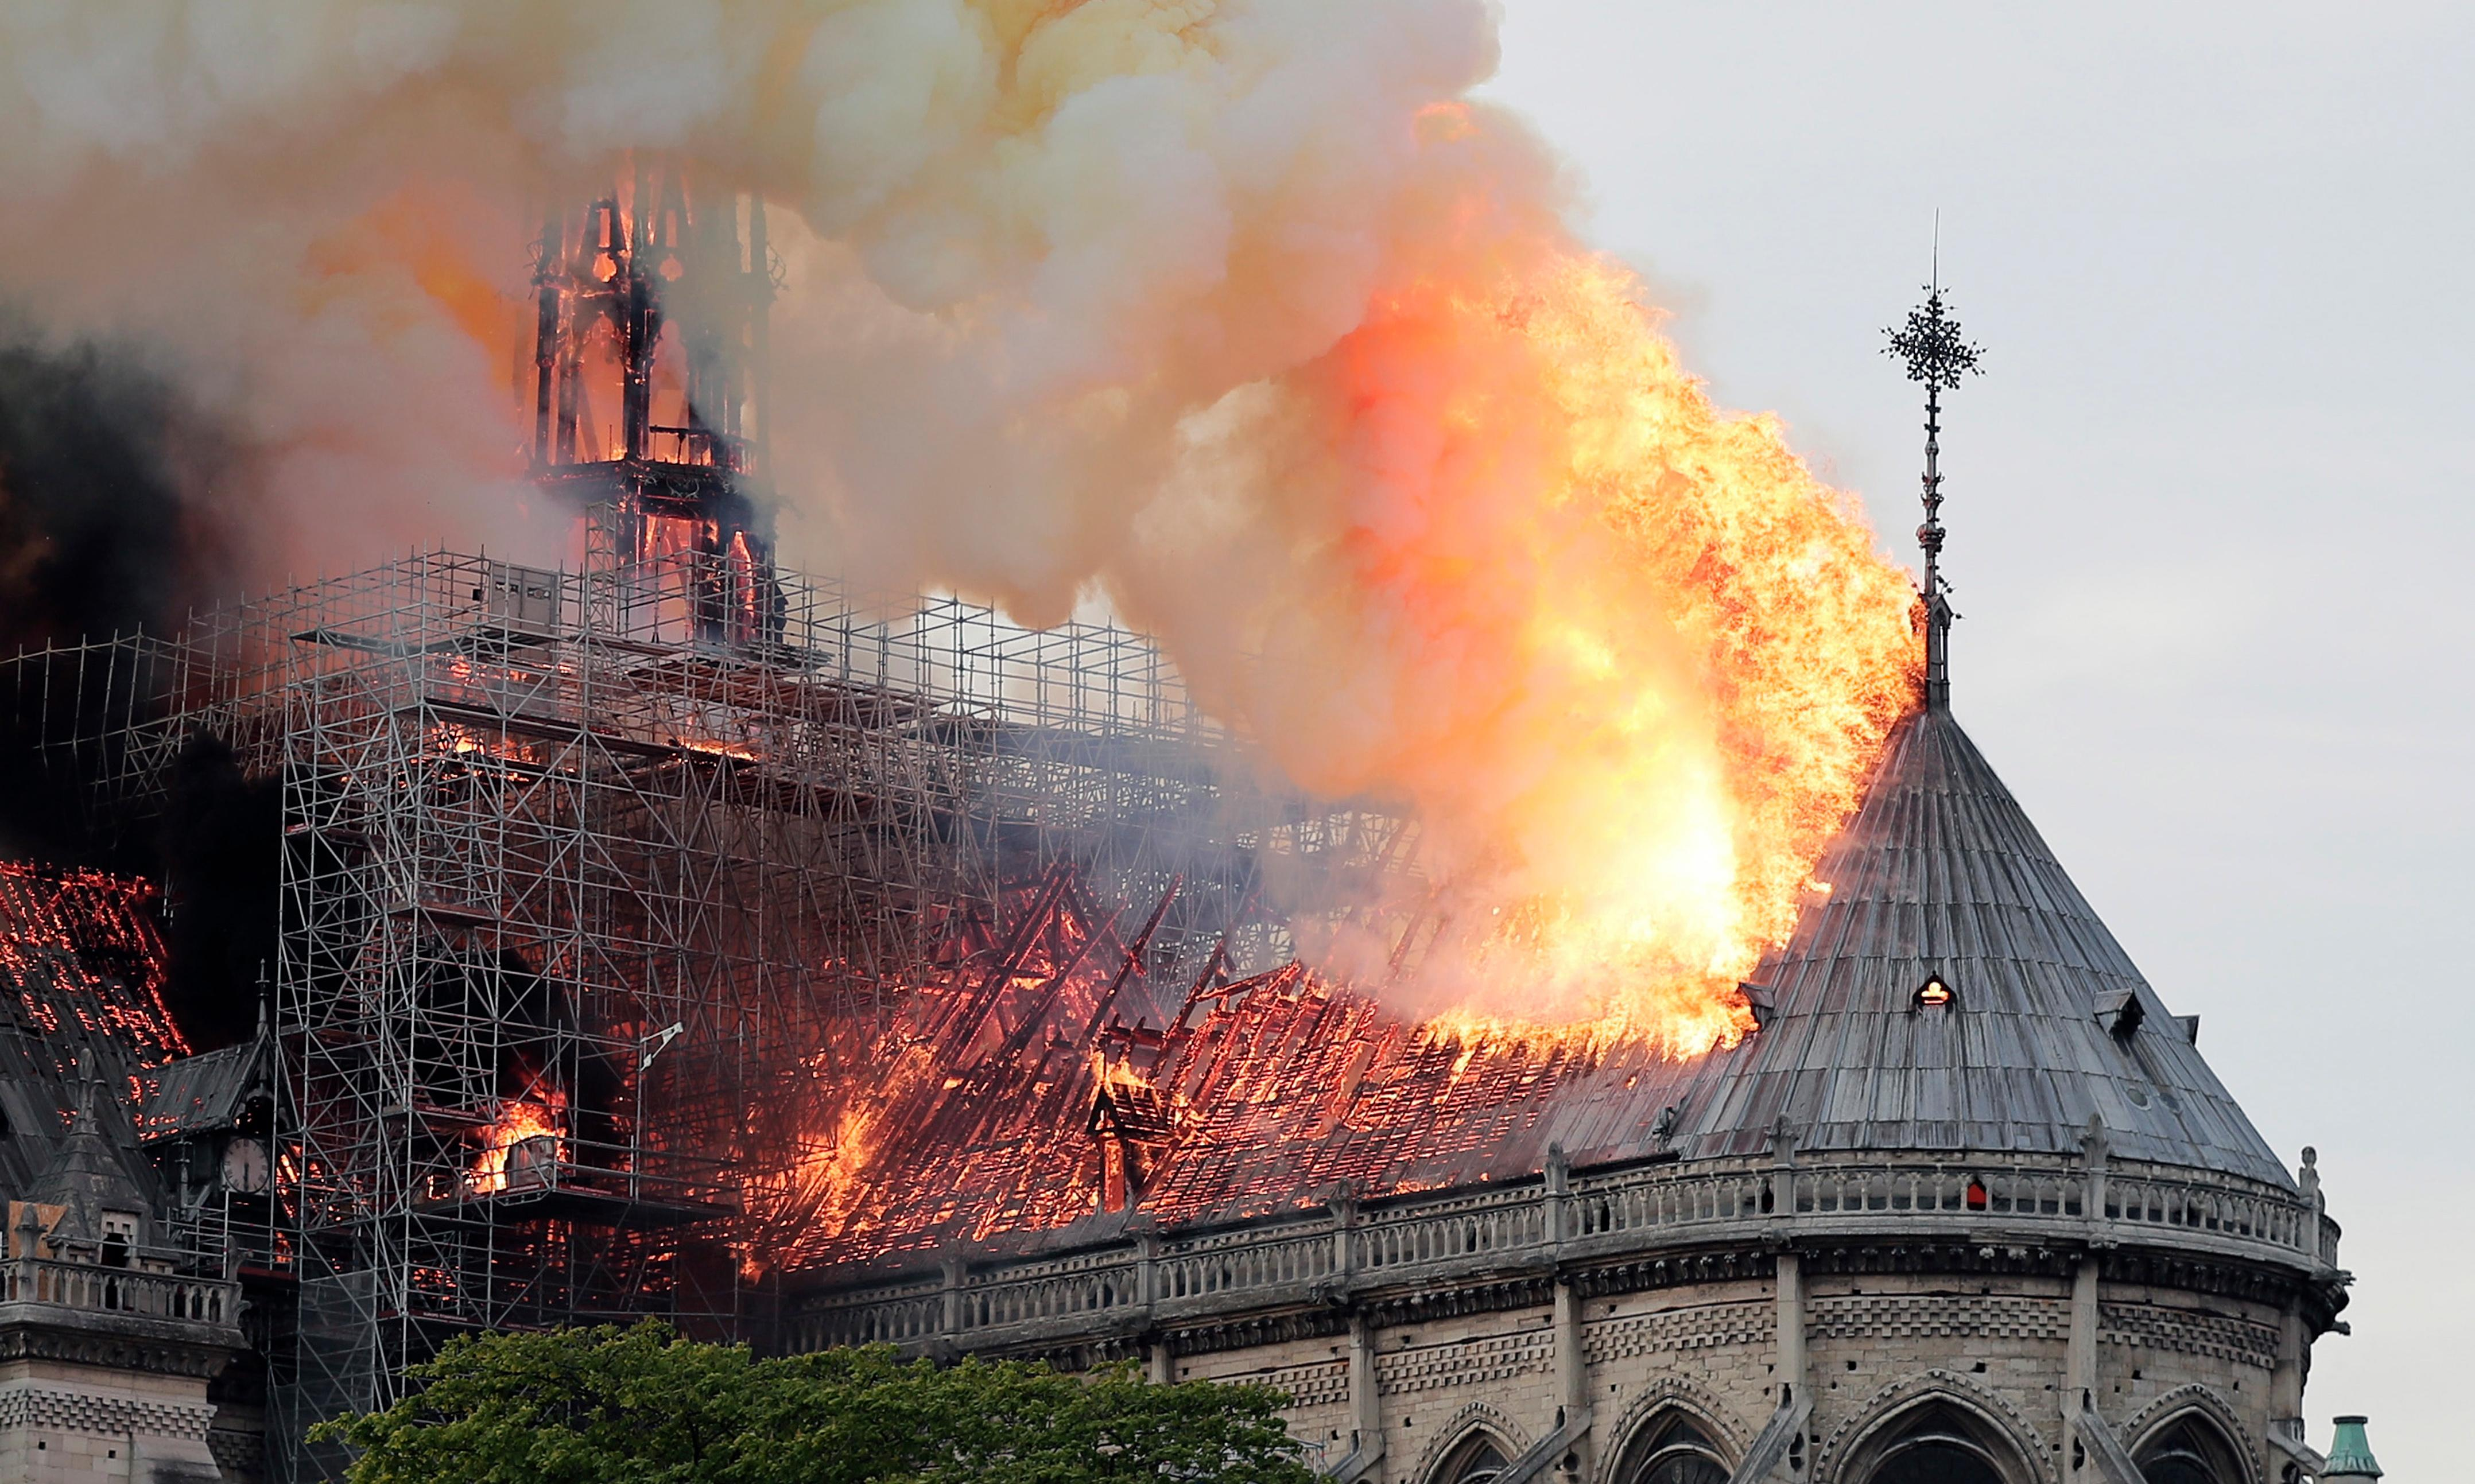 World leaders react to devastating Notre Dame fire in Paris